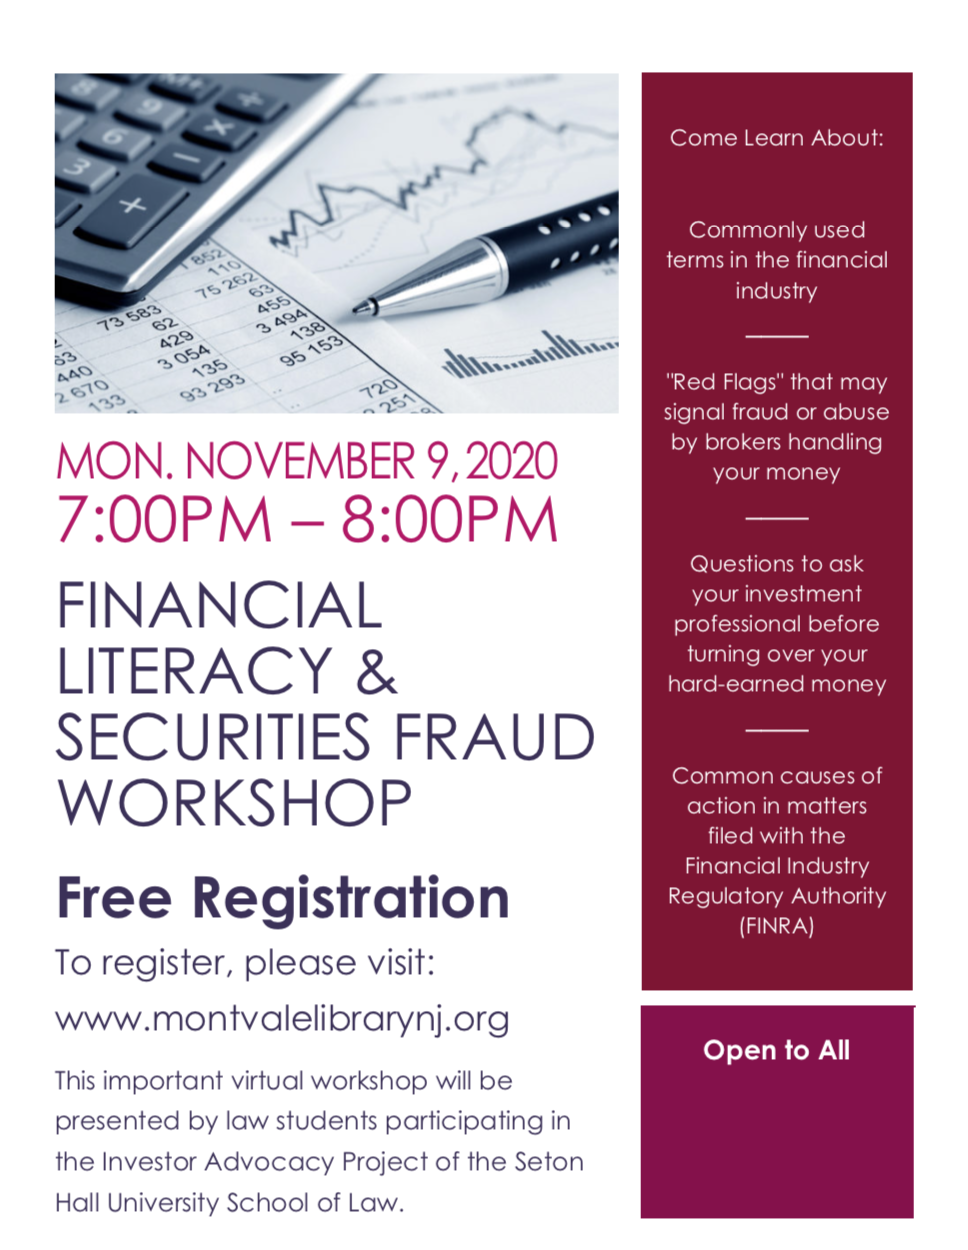 Financial Literacy & Securities Fraud Workshop